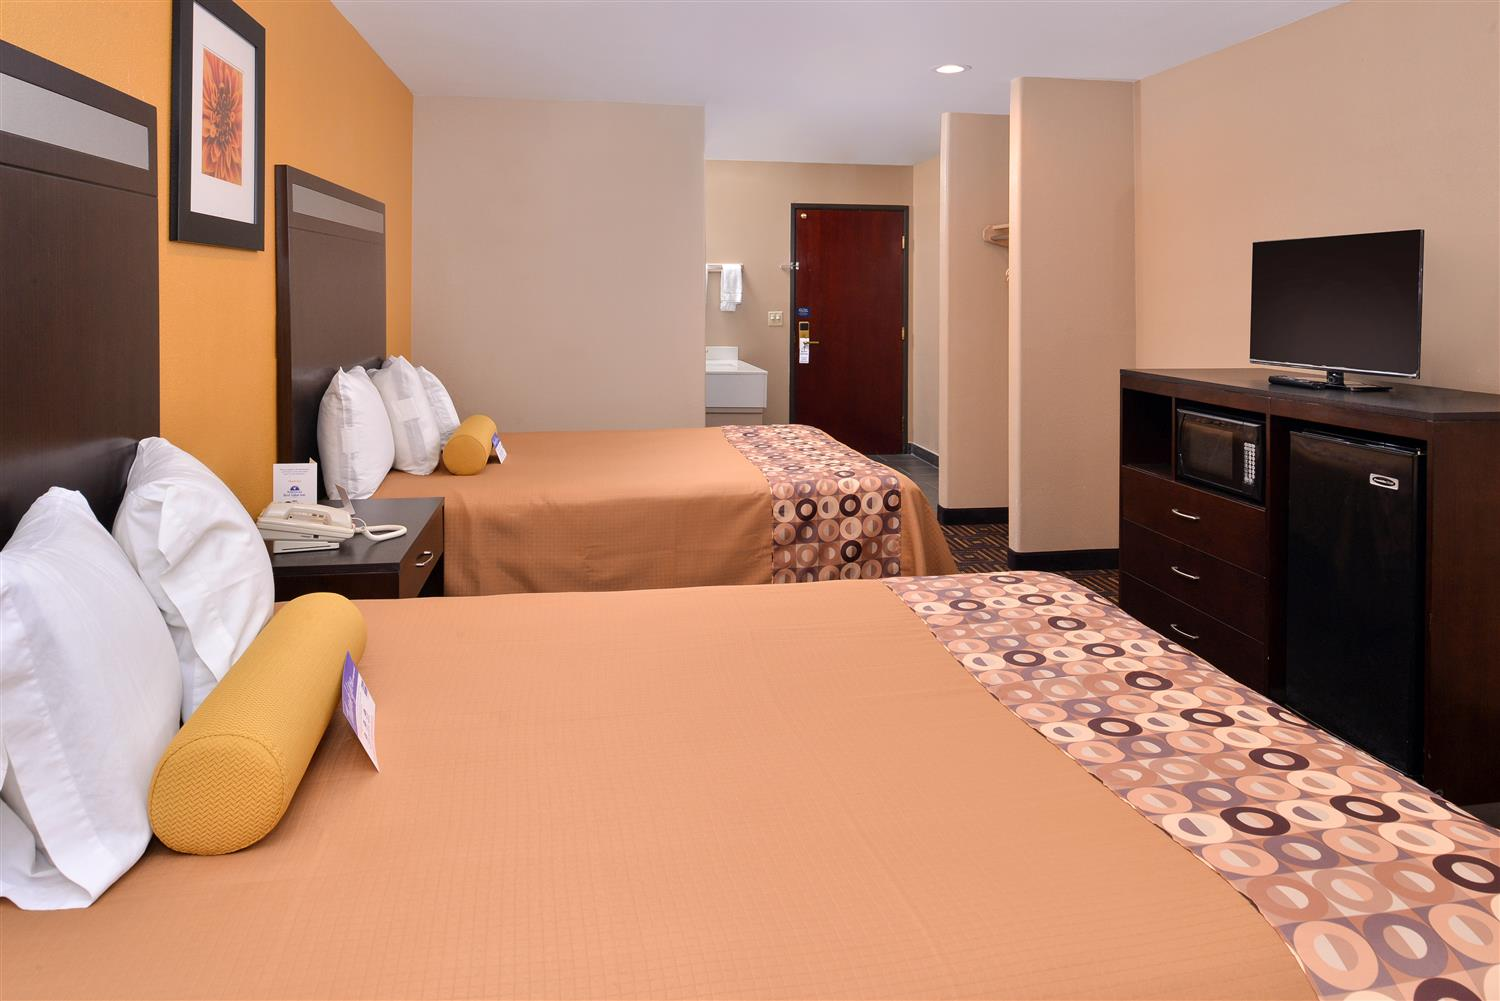 Americas Best Value Inn Amp Suites Madera Ca See Discounts